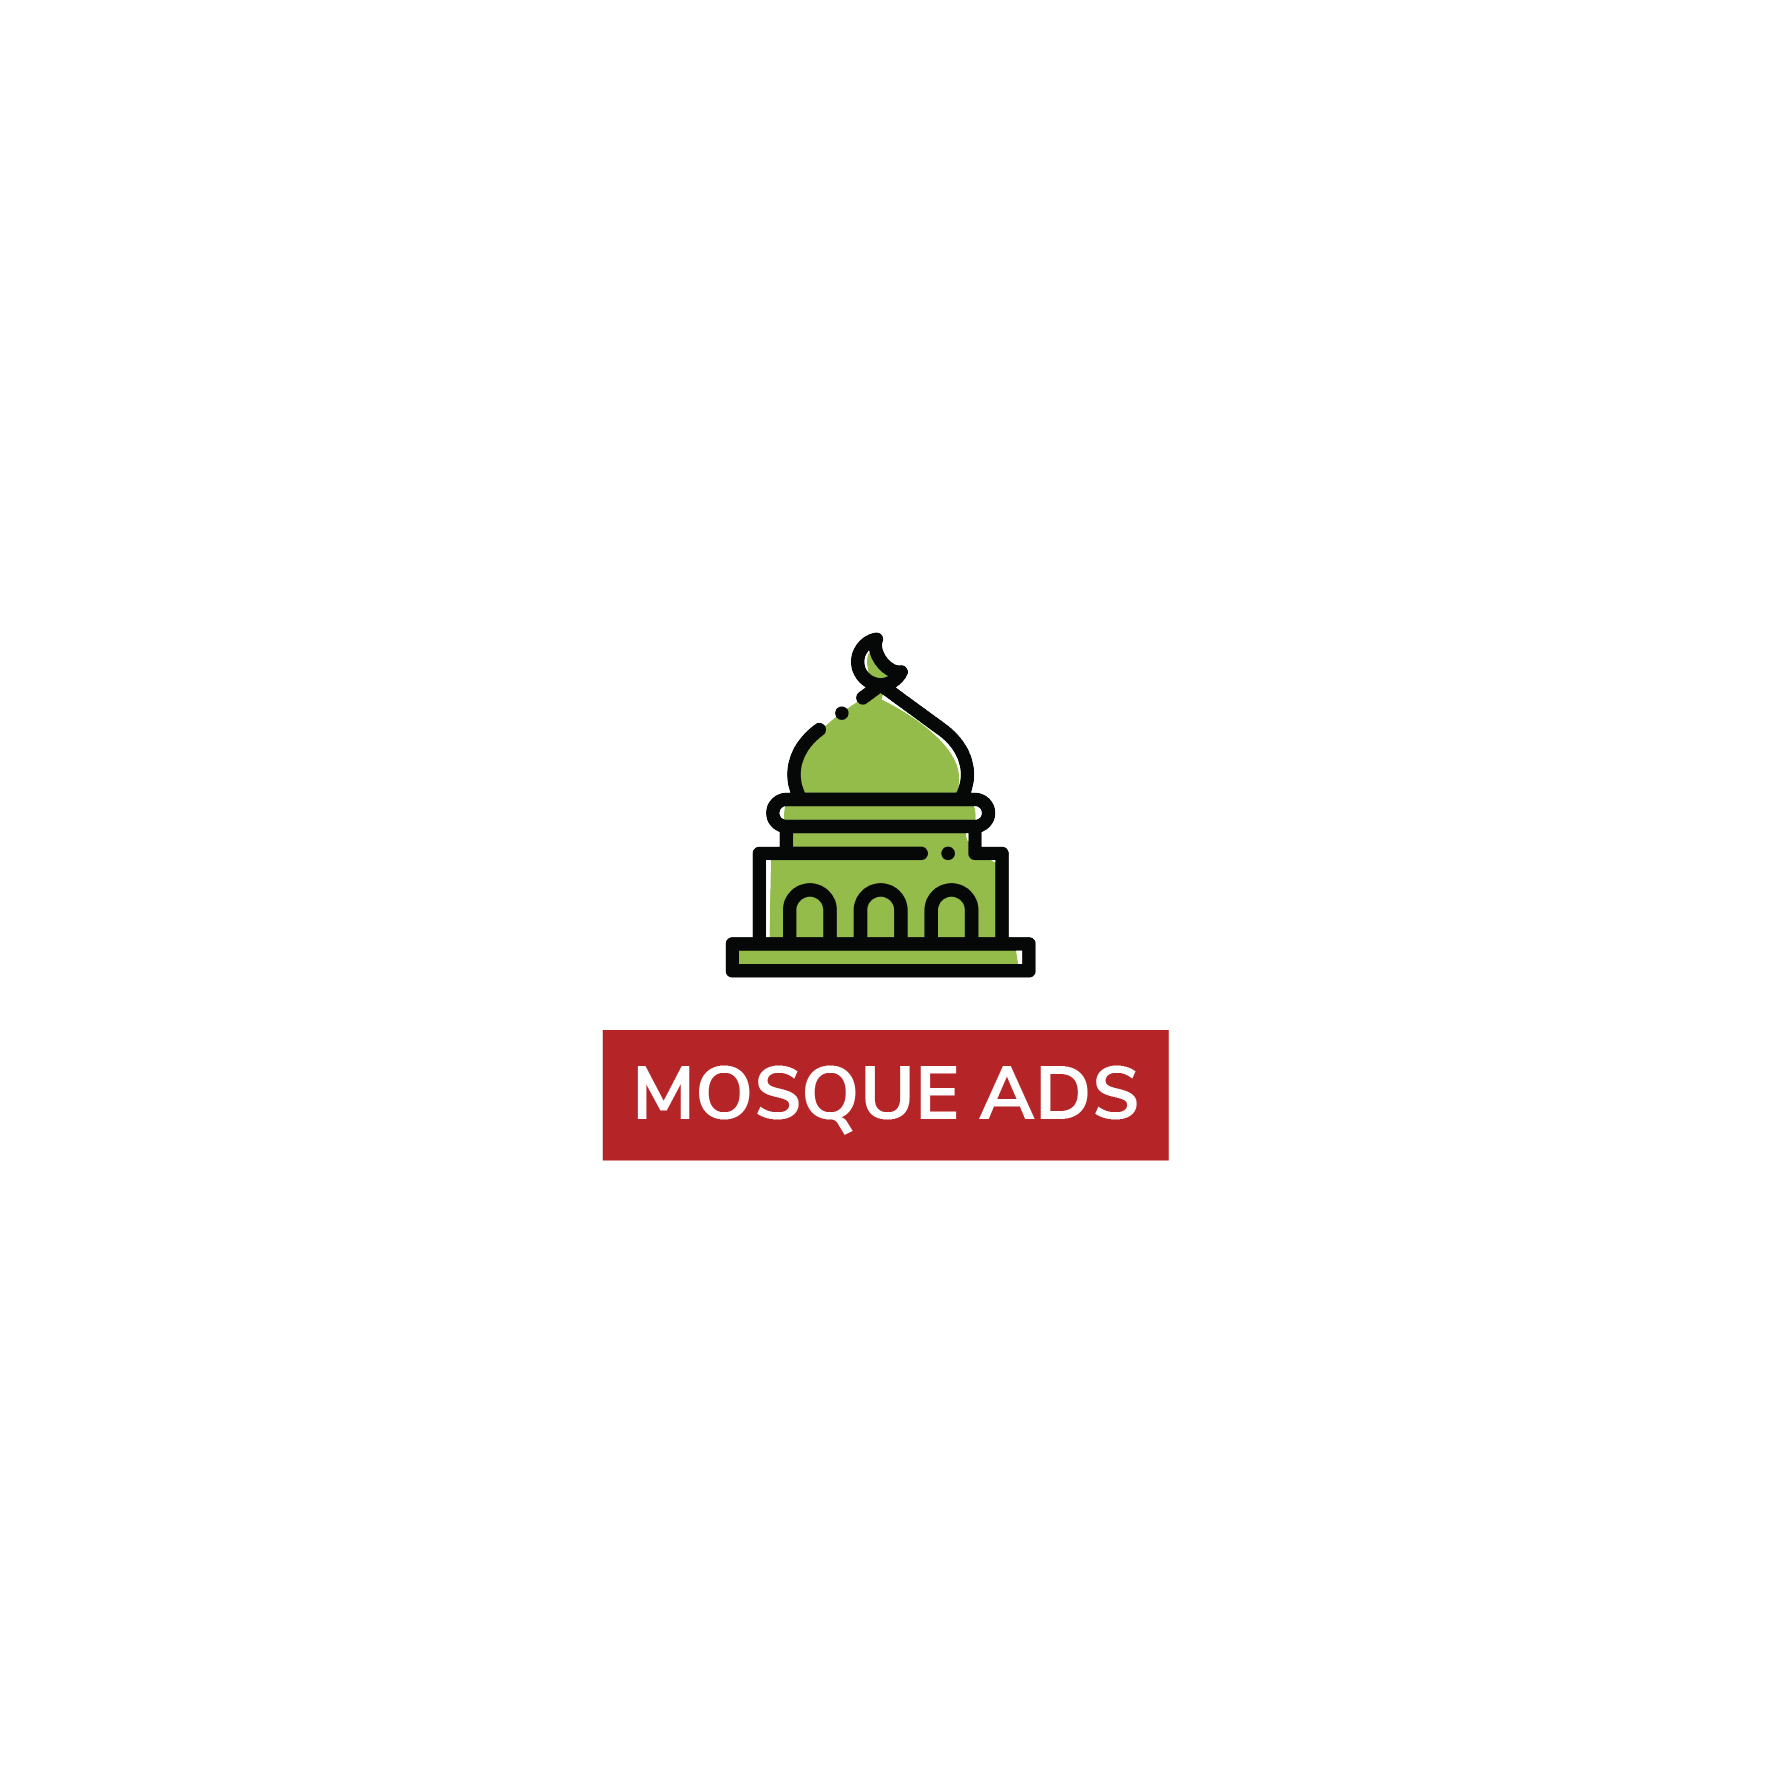 Mosque advertisement - png